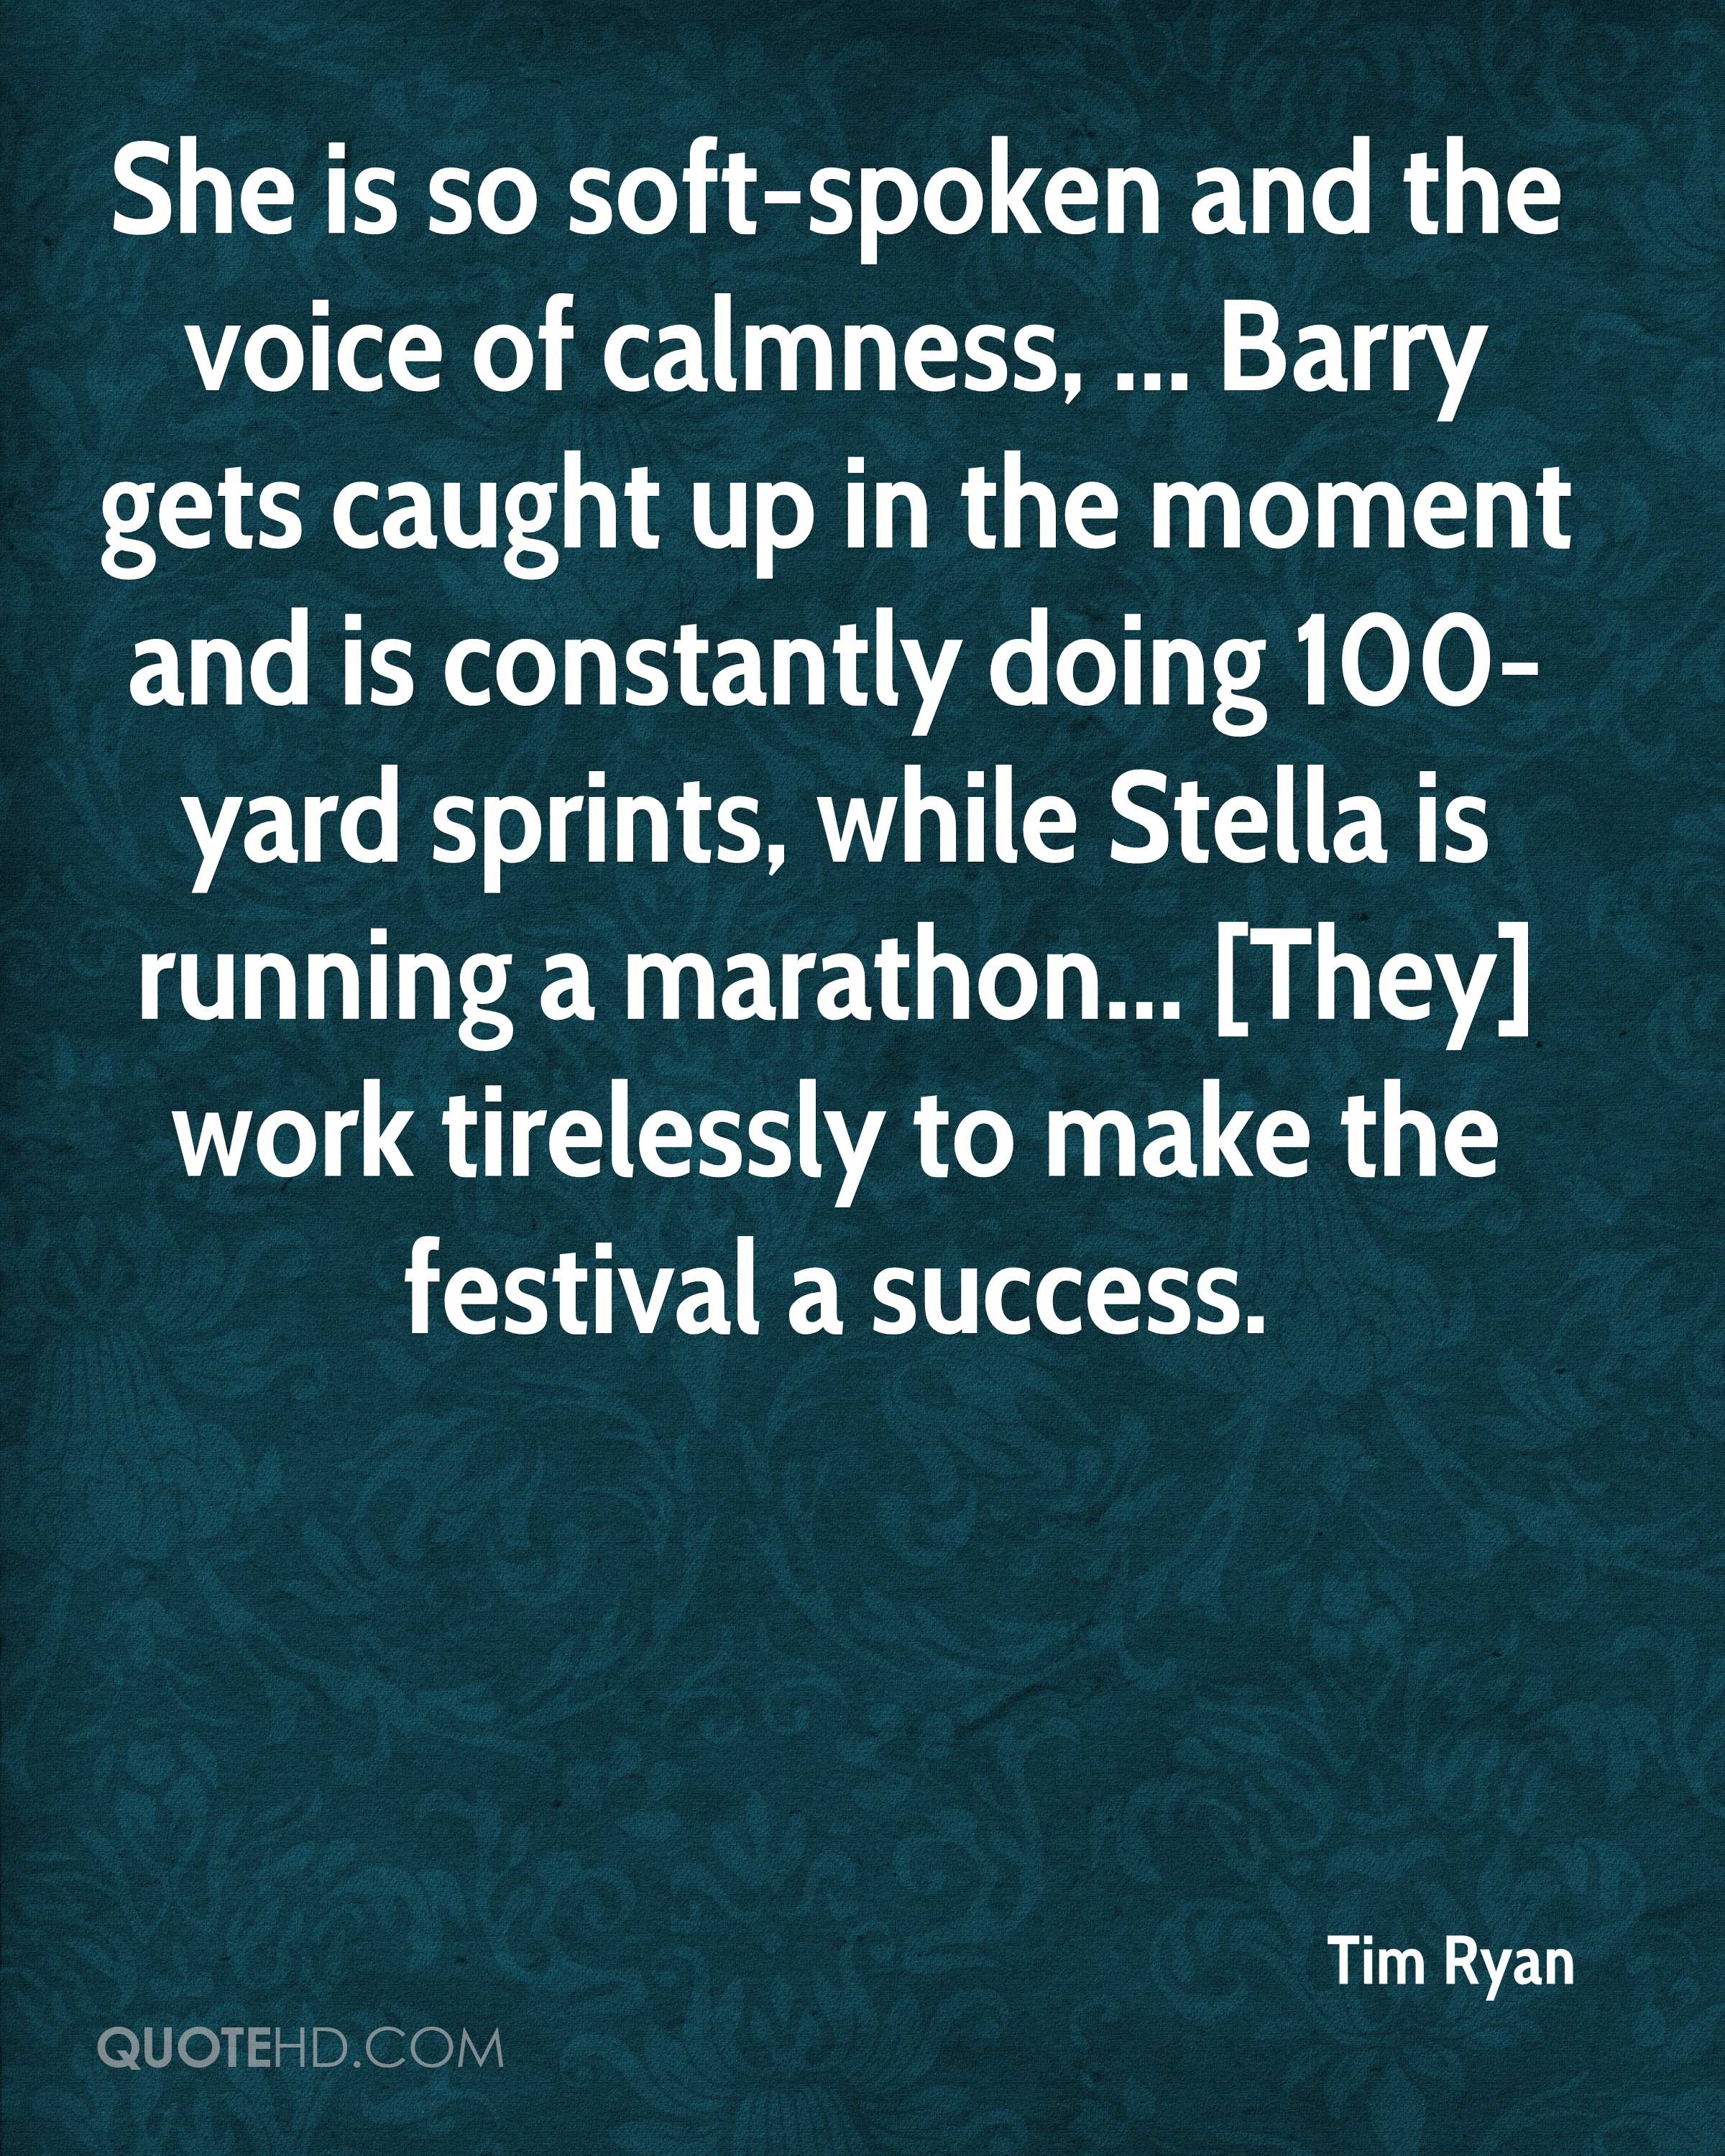 She is so soft-spoken and the voice of calmness, ... Barry gets caught up in the moment and is constantly doing 100-yard sprints, while Stella is running a marathon... [They] work tirelessly to make the festival a success.